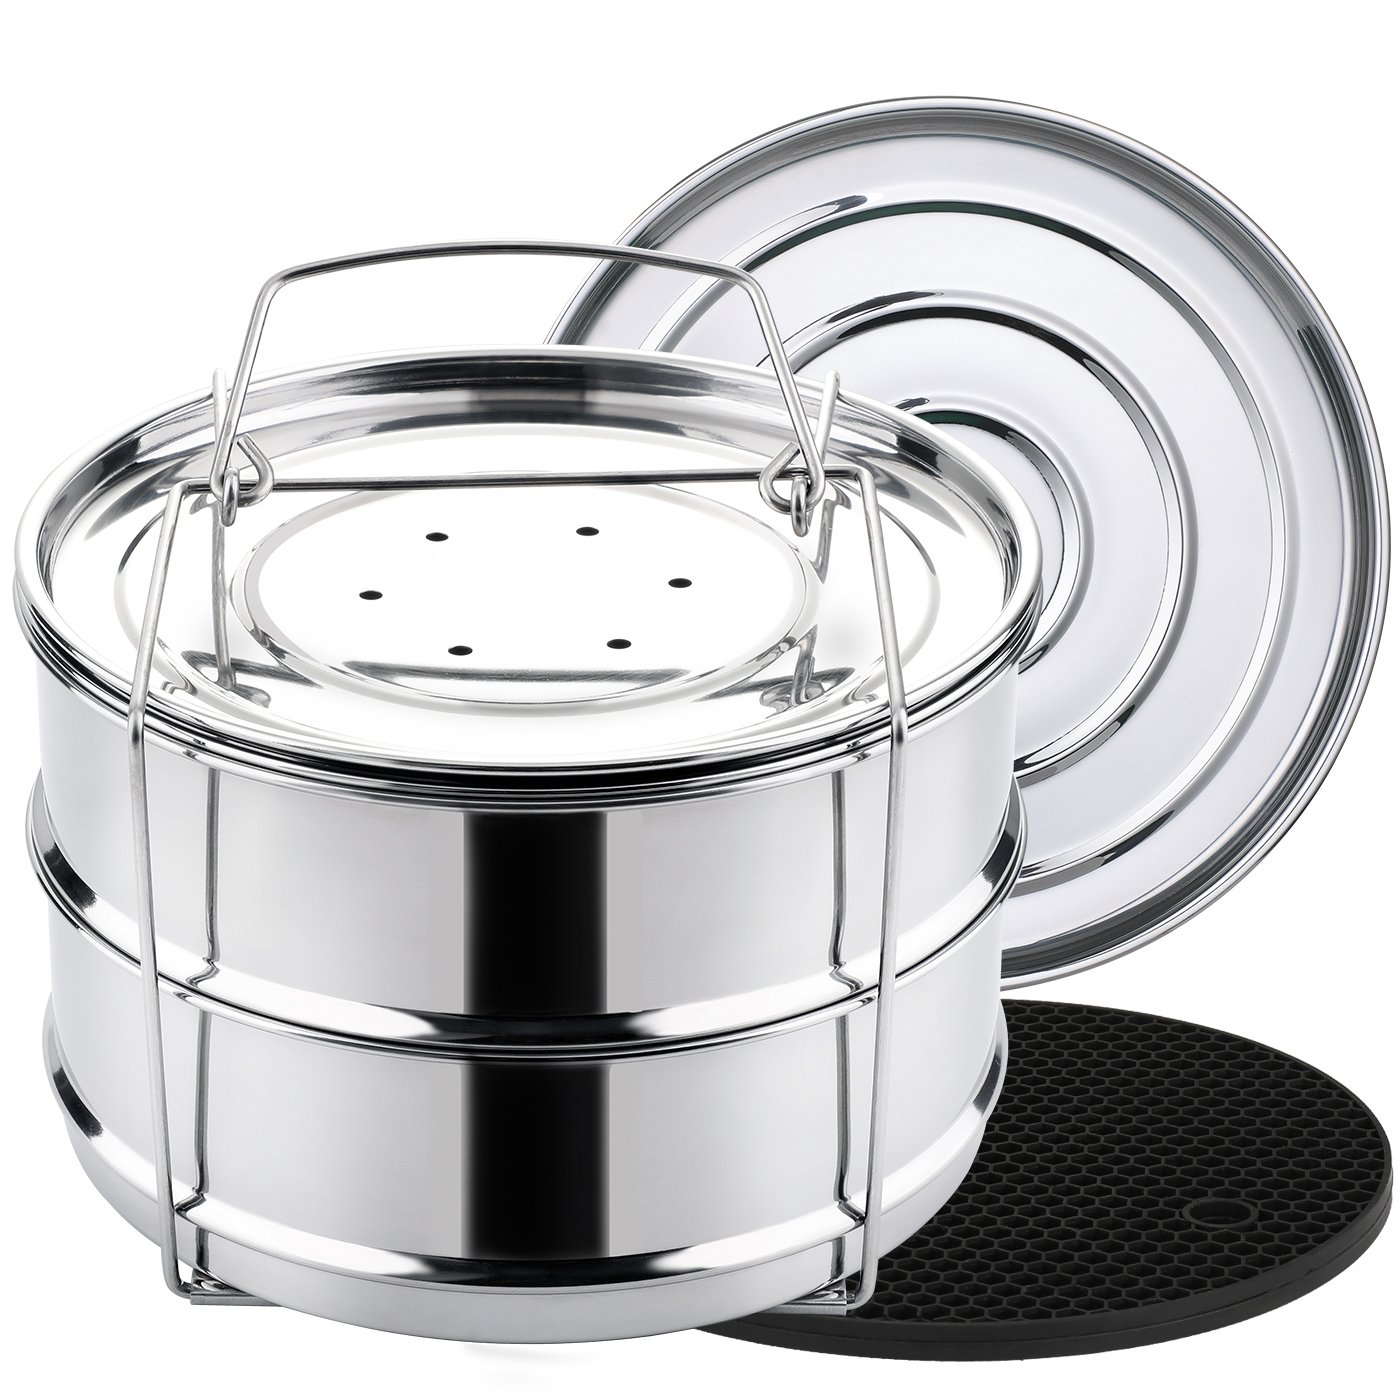 Aozita Stackable Steamer Insert Pans with Sling for Instant Pot Accessories 6/8 qt - Pot in Pot, Baking, Casseroles, Lasagna Pans, Food Steamer for Pressure Cooker, Upgrade Interchangeable Lids by Aozita